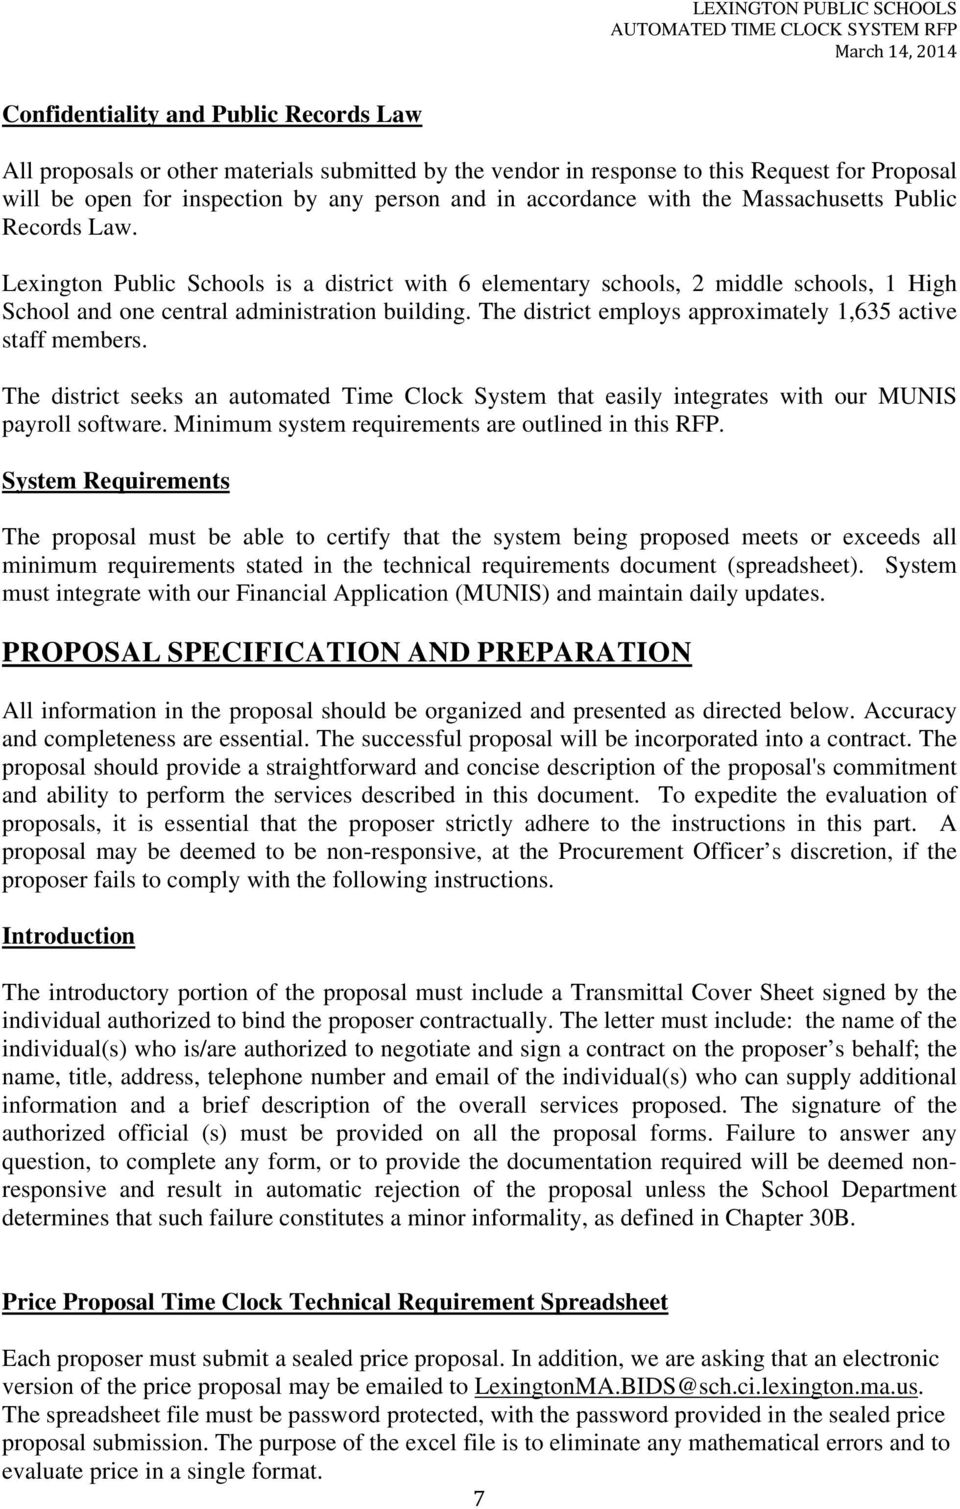 AUTOMATED TIME CLOCK SYSTEM REQUEST FOR PROPOSALS - PDF